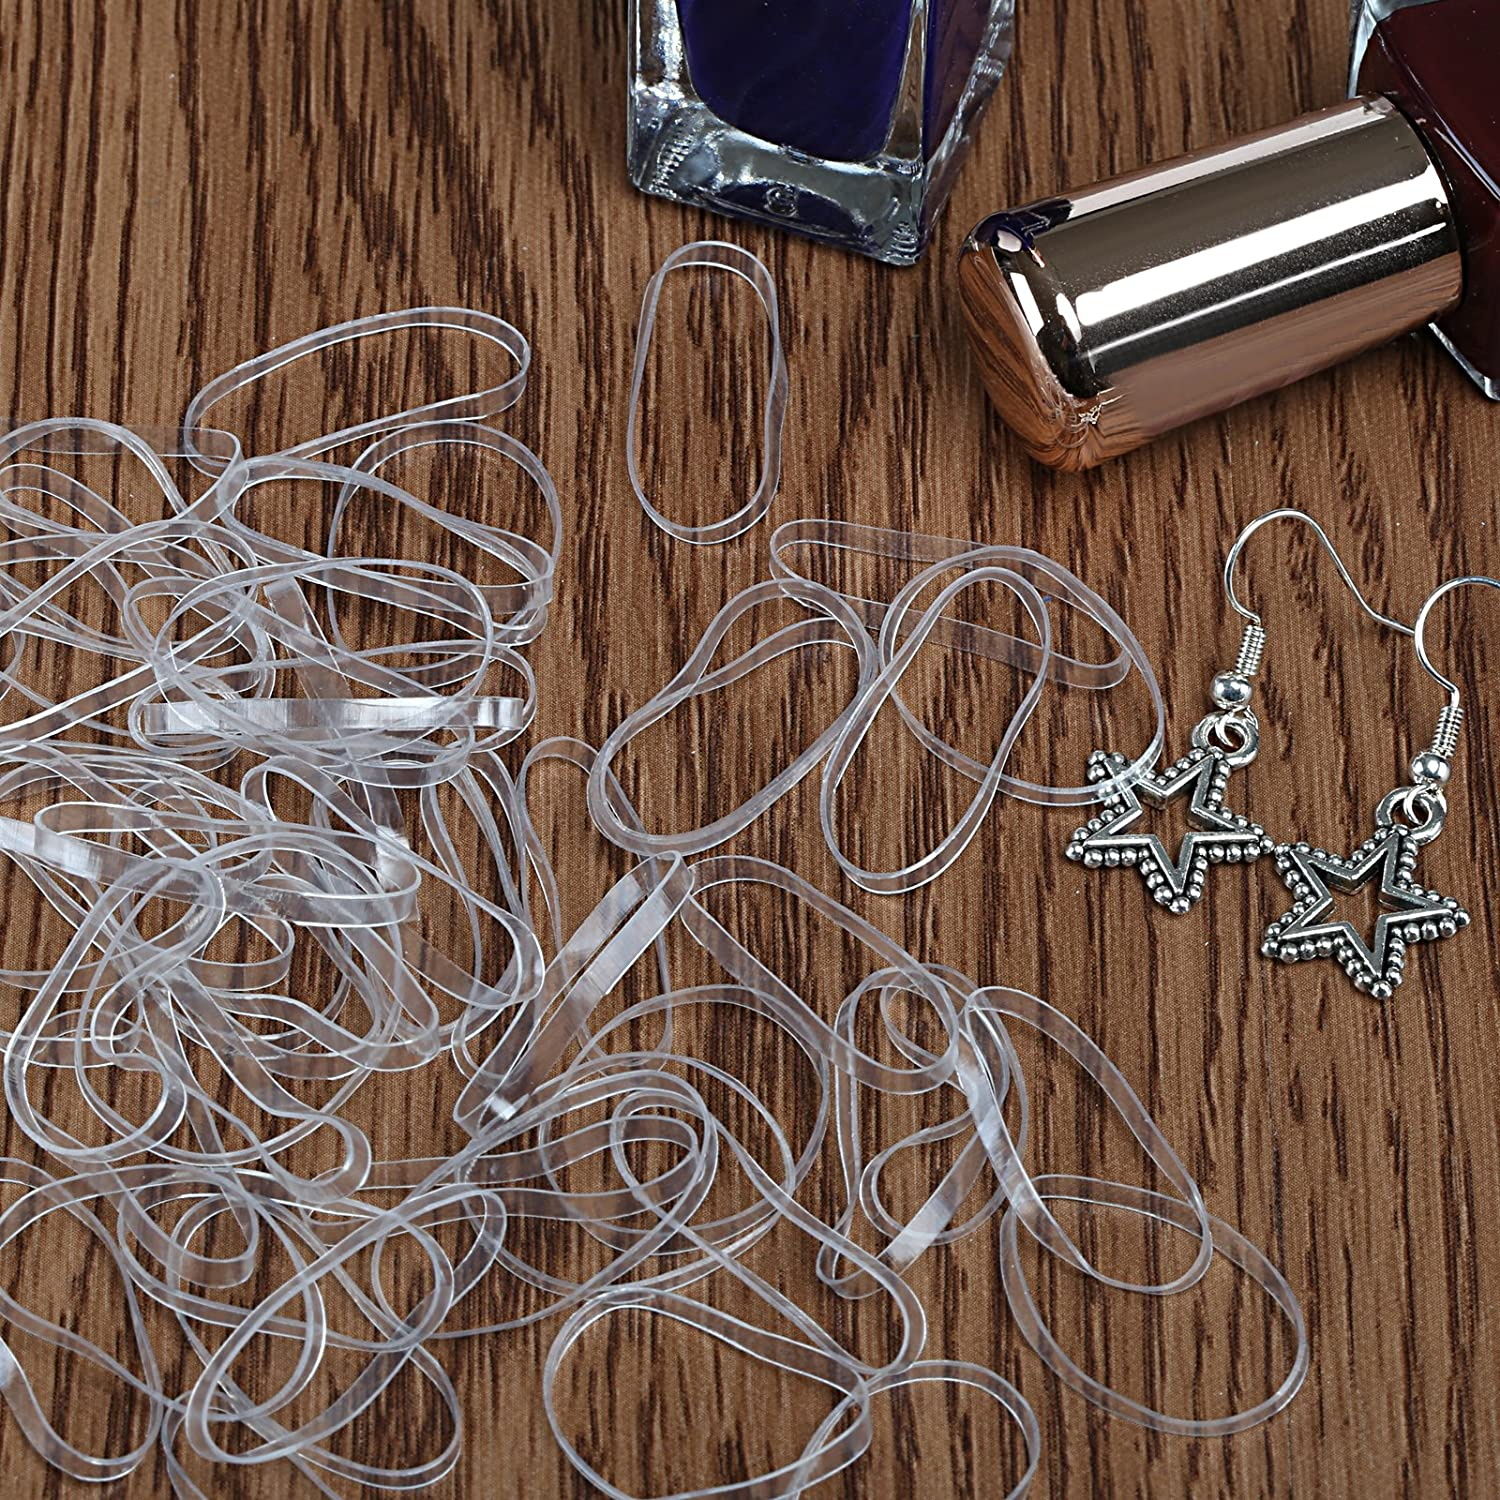 Naler Hair Styling Set, 1000pcs Clear Elastic Rubber Hair Band Hair Tie with Hair Design Styling Tools Accessories DIY